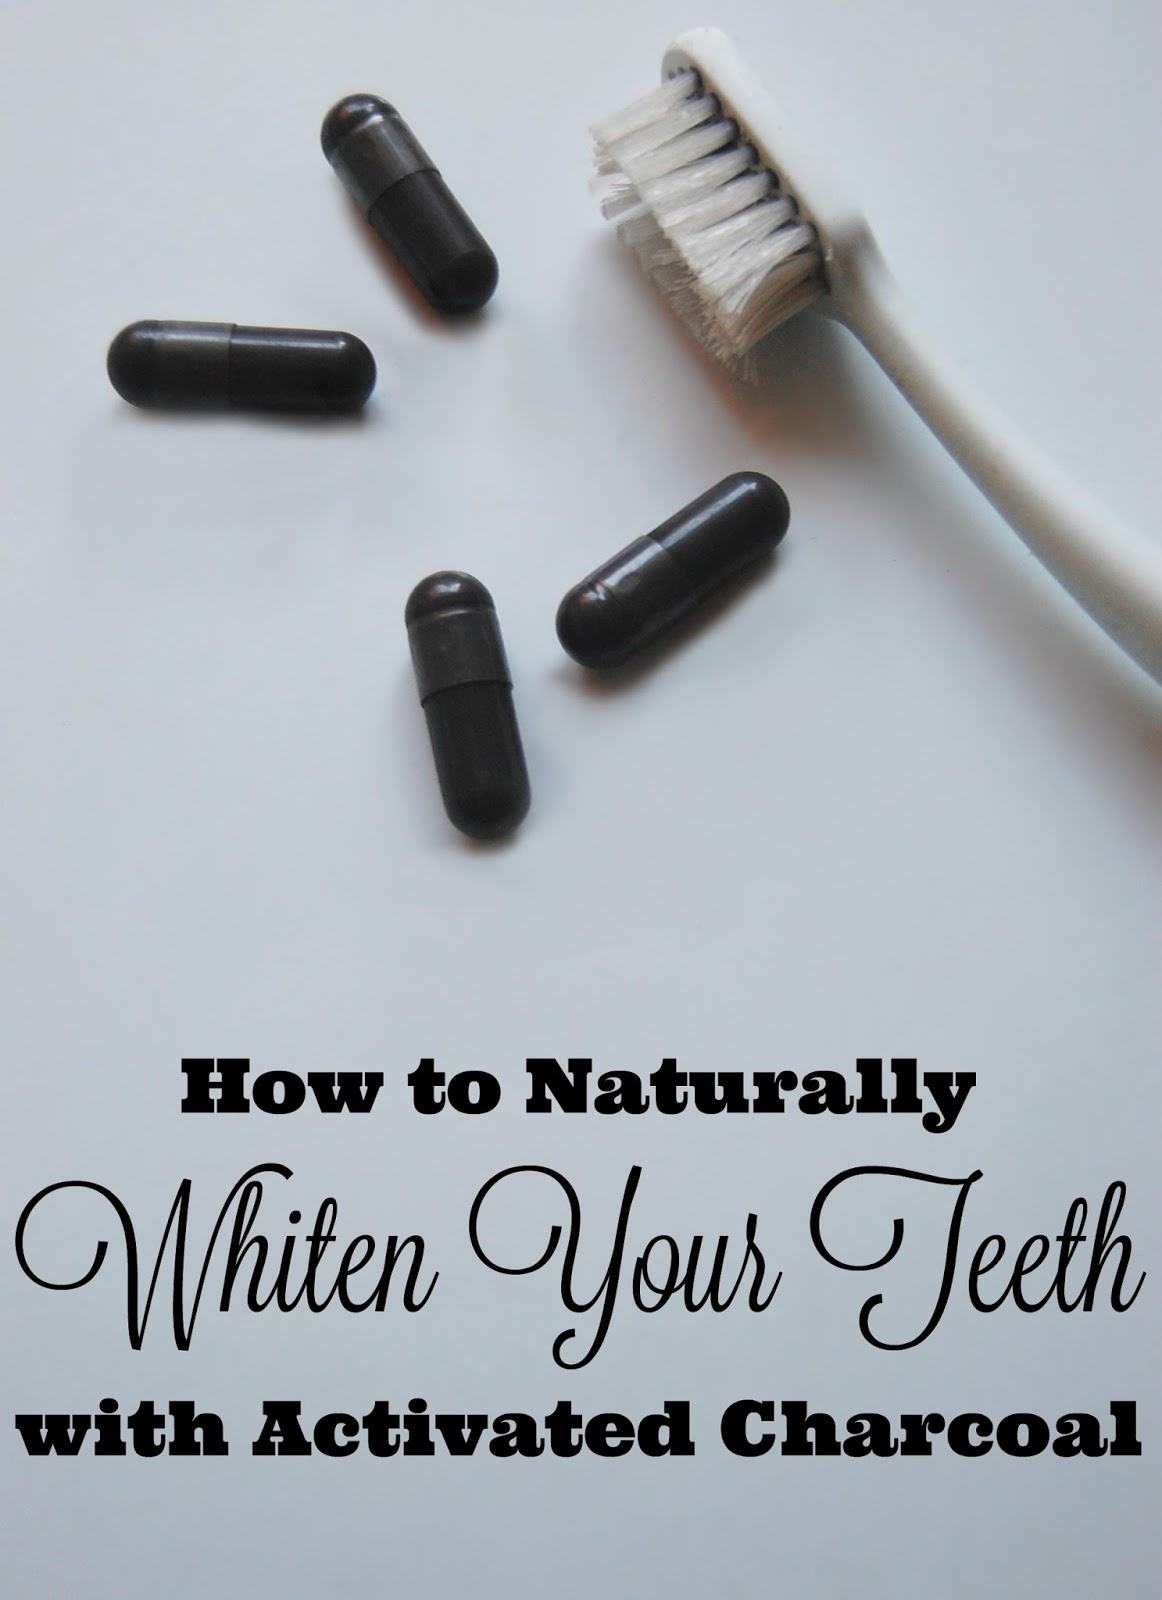 how to use charcola whiten teeth